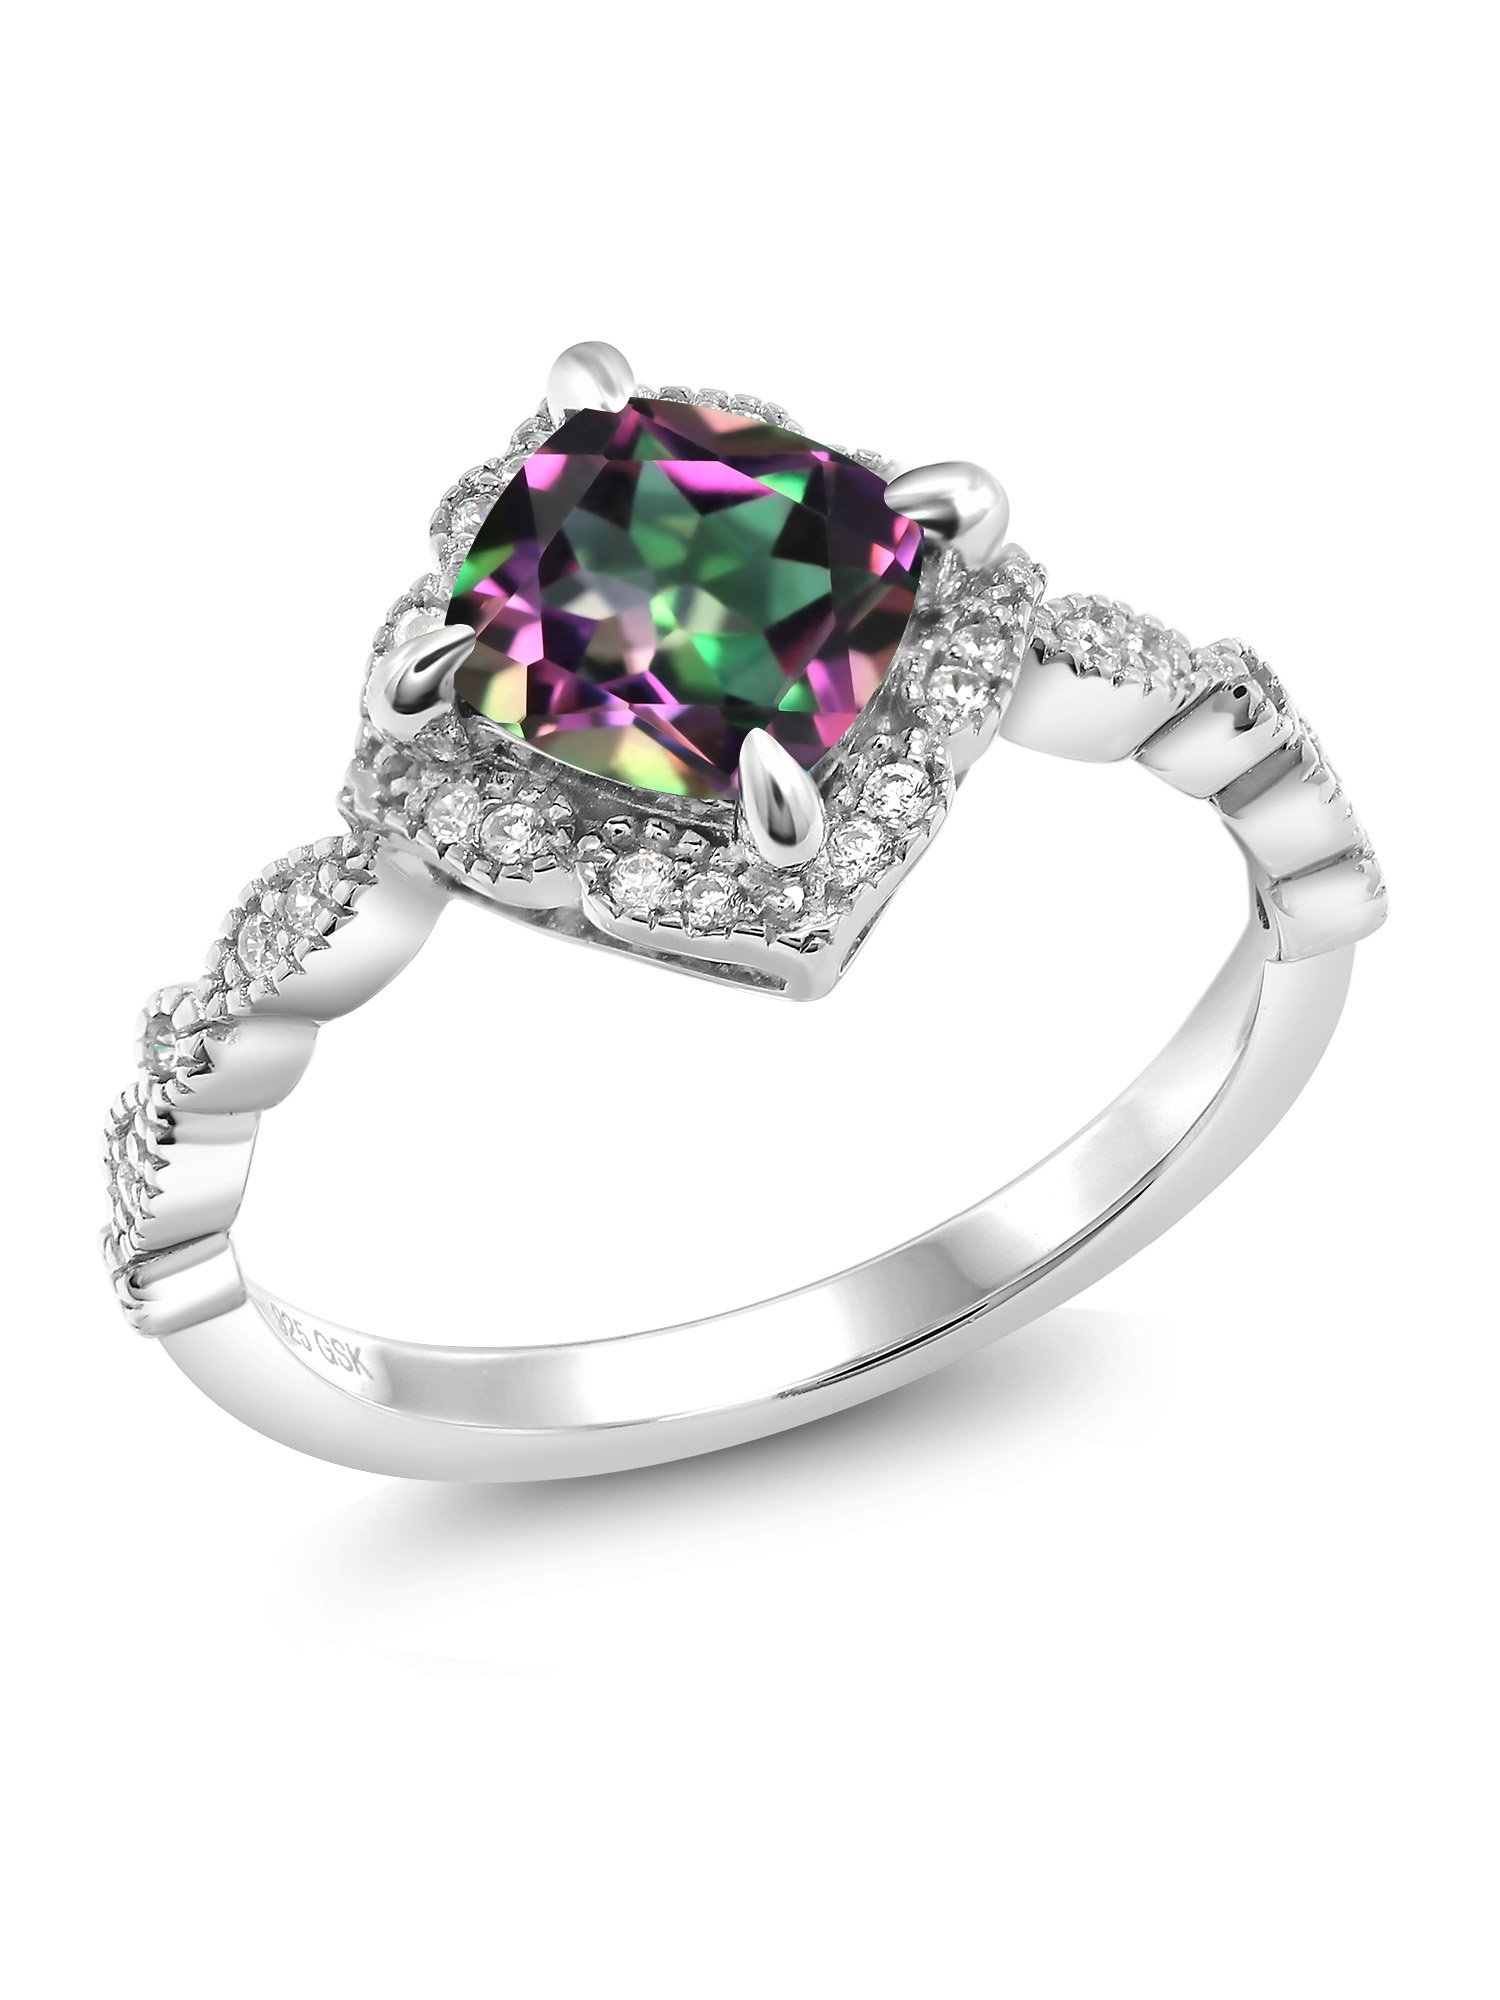 Green Mystic Topaz 925 Platinum Plated Sterling Silver Women's Ring 2.04 Ct Cushion Cut (Size 6)